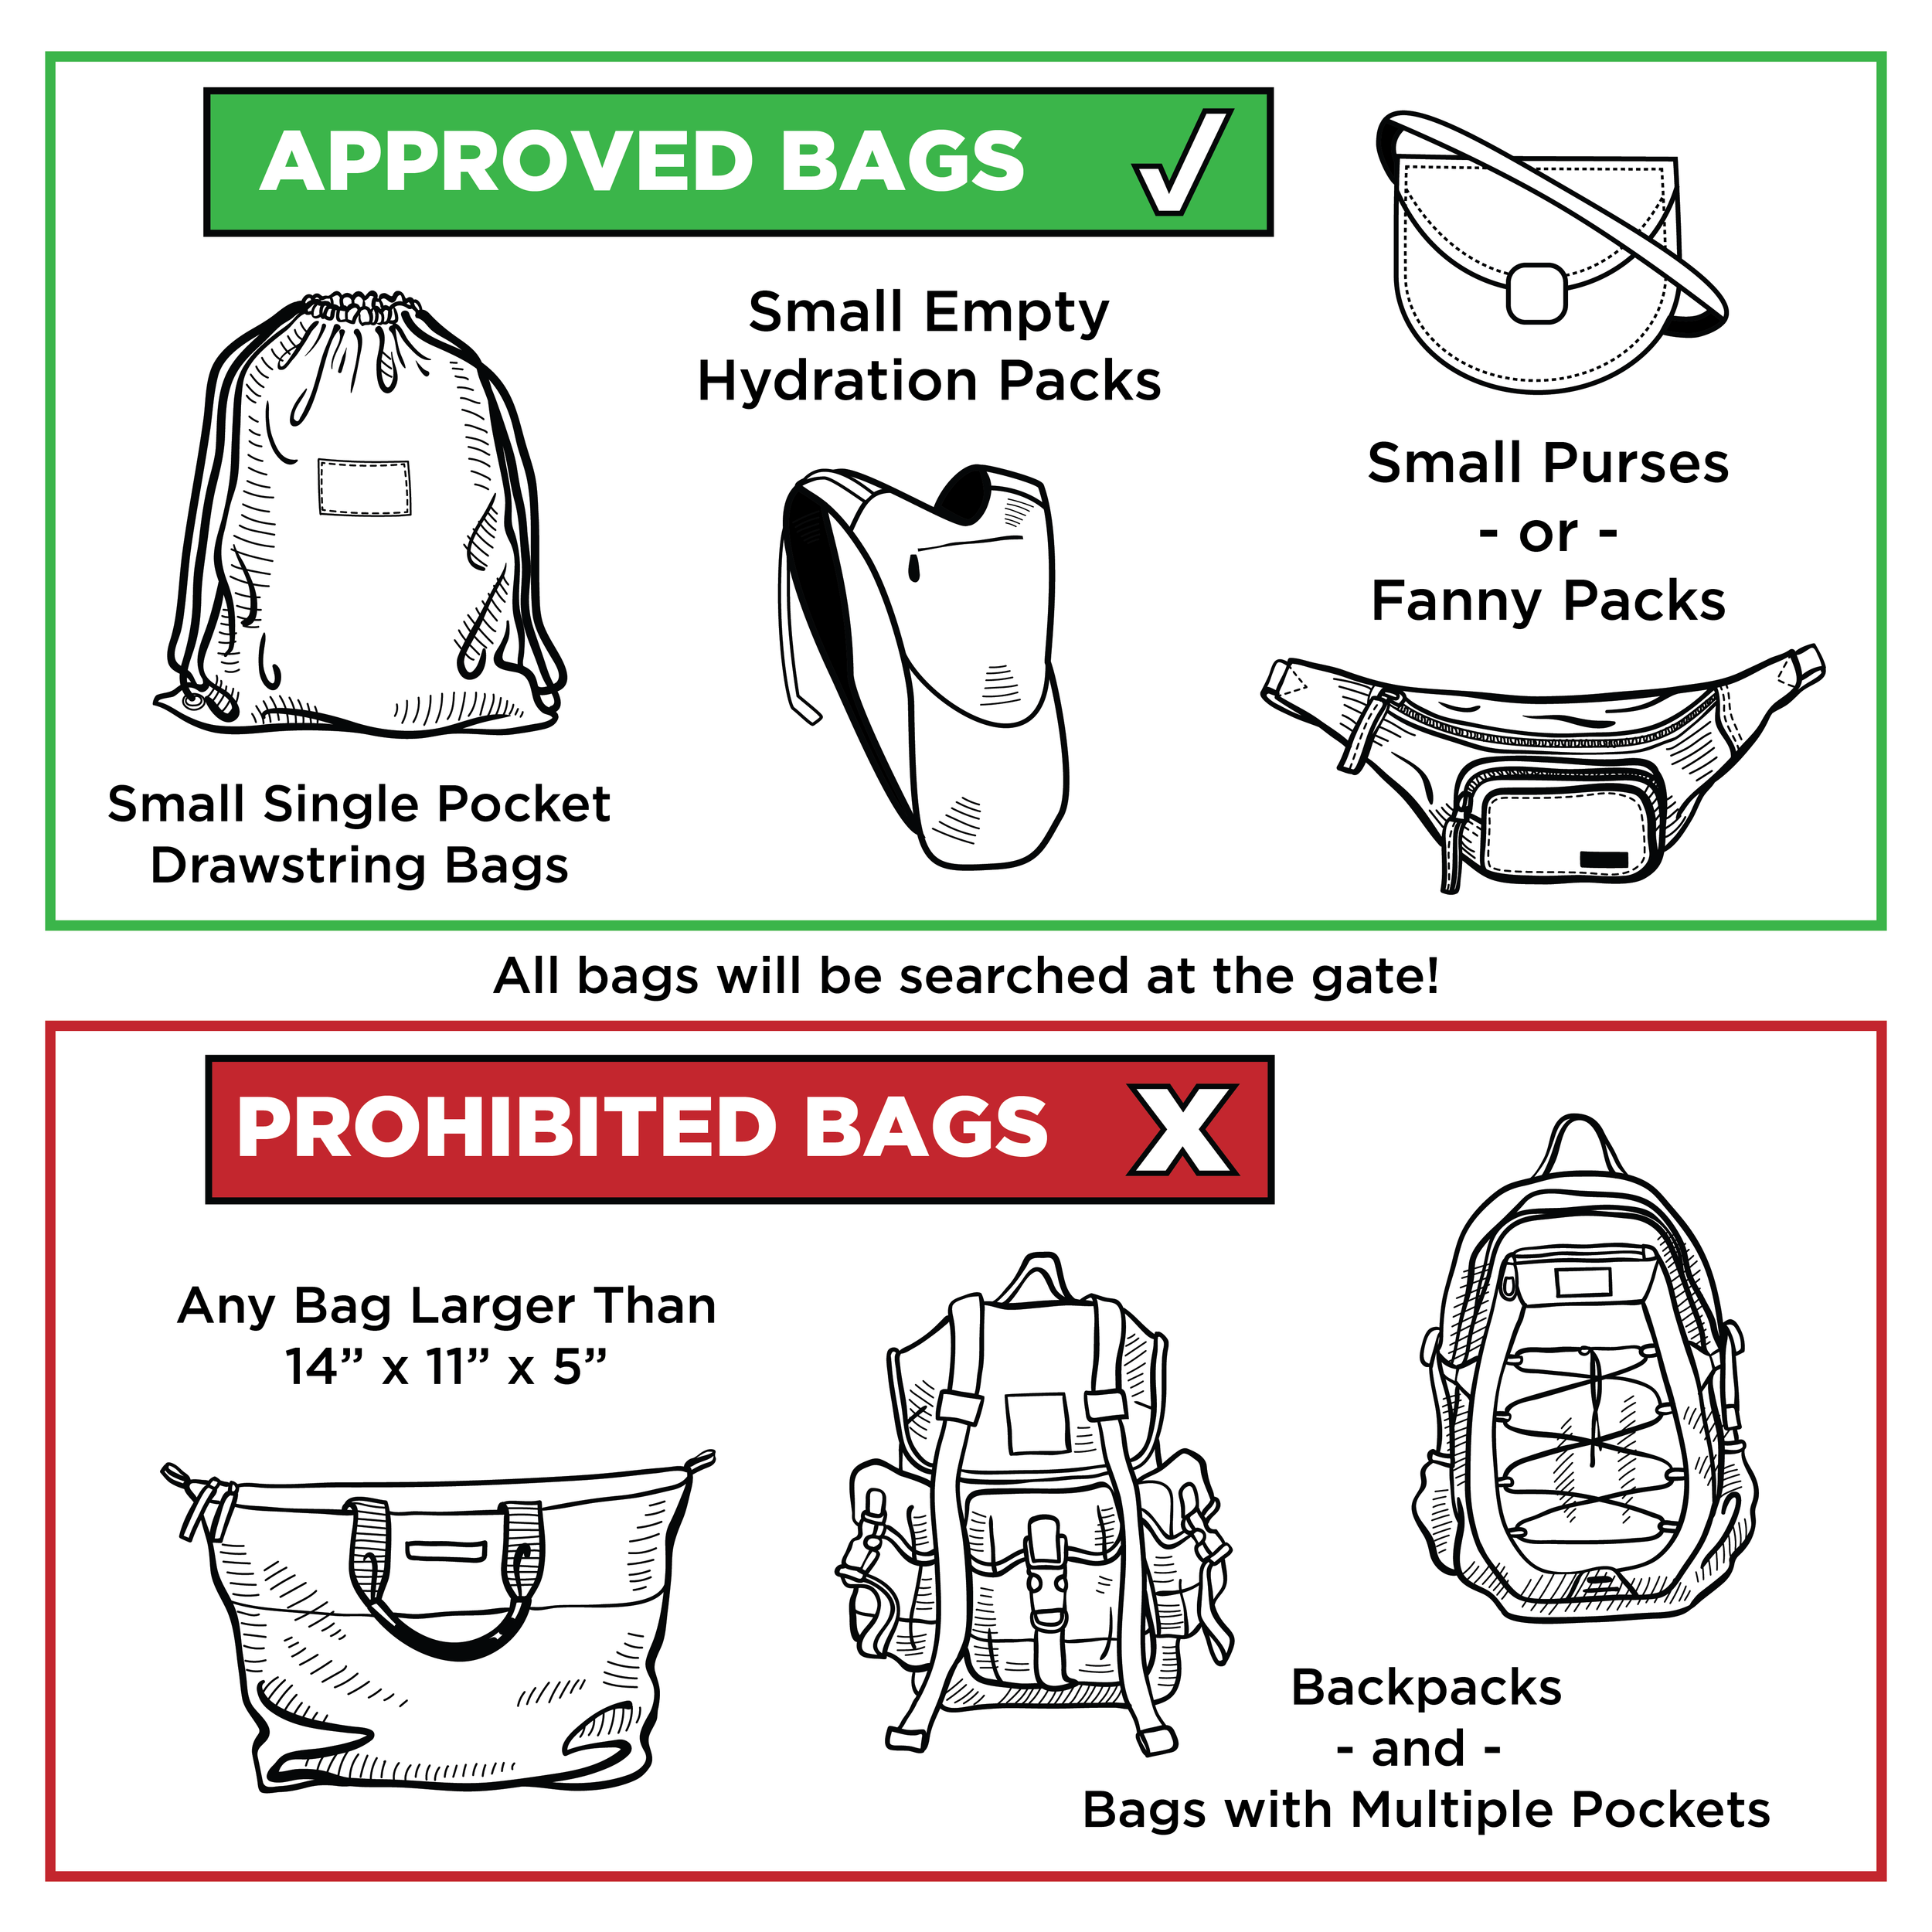 Bag Policy_Square-01.png